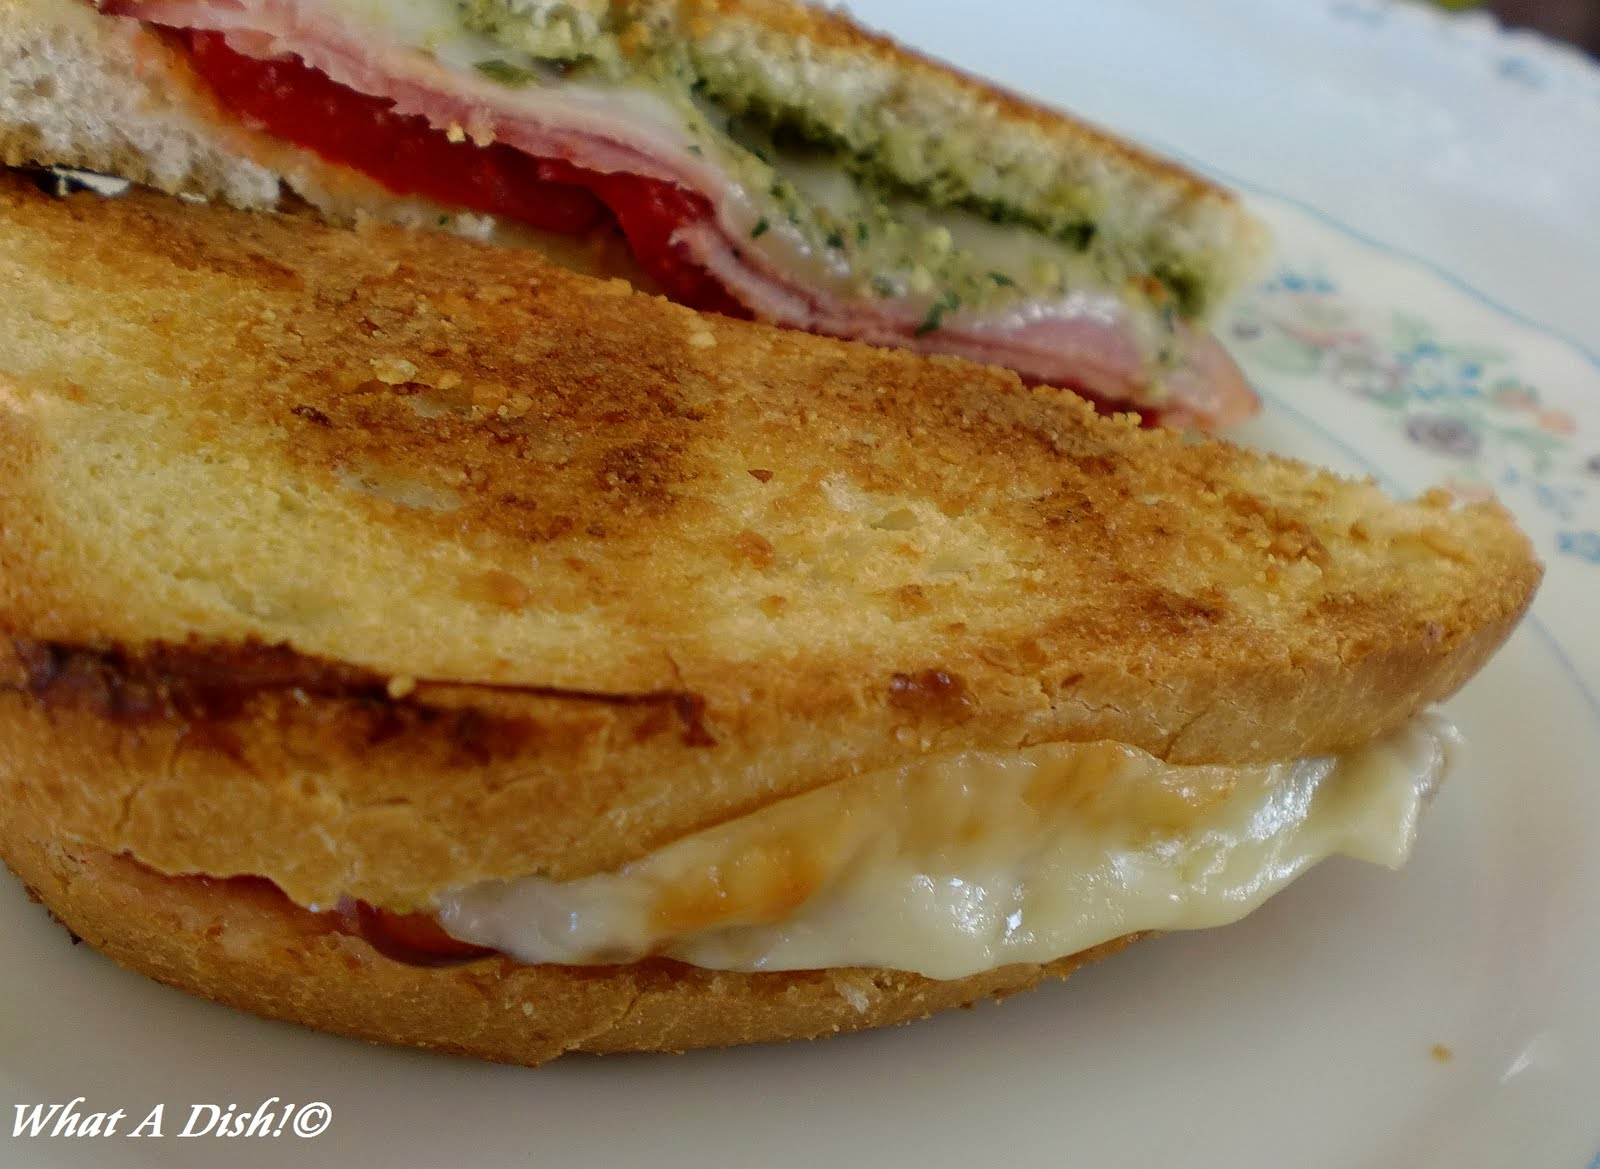 What A Dish!: Grilled Roasted Red Pepper & Ham Sandwich